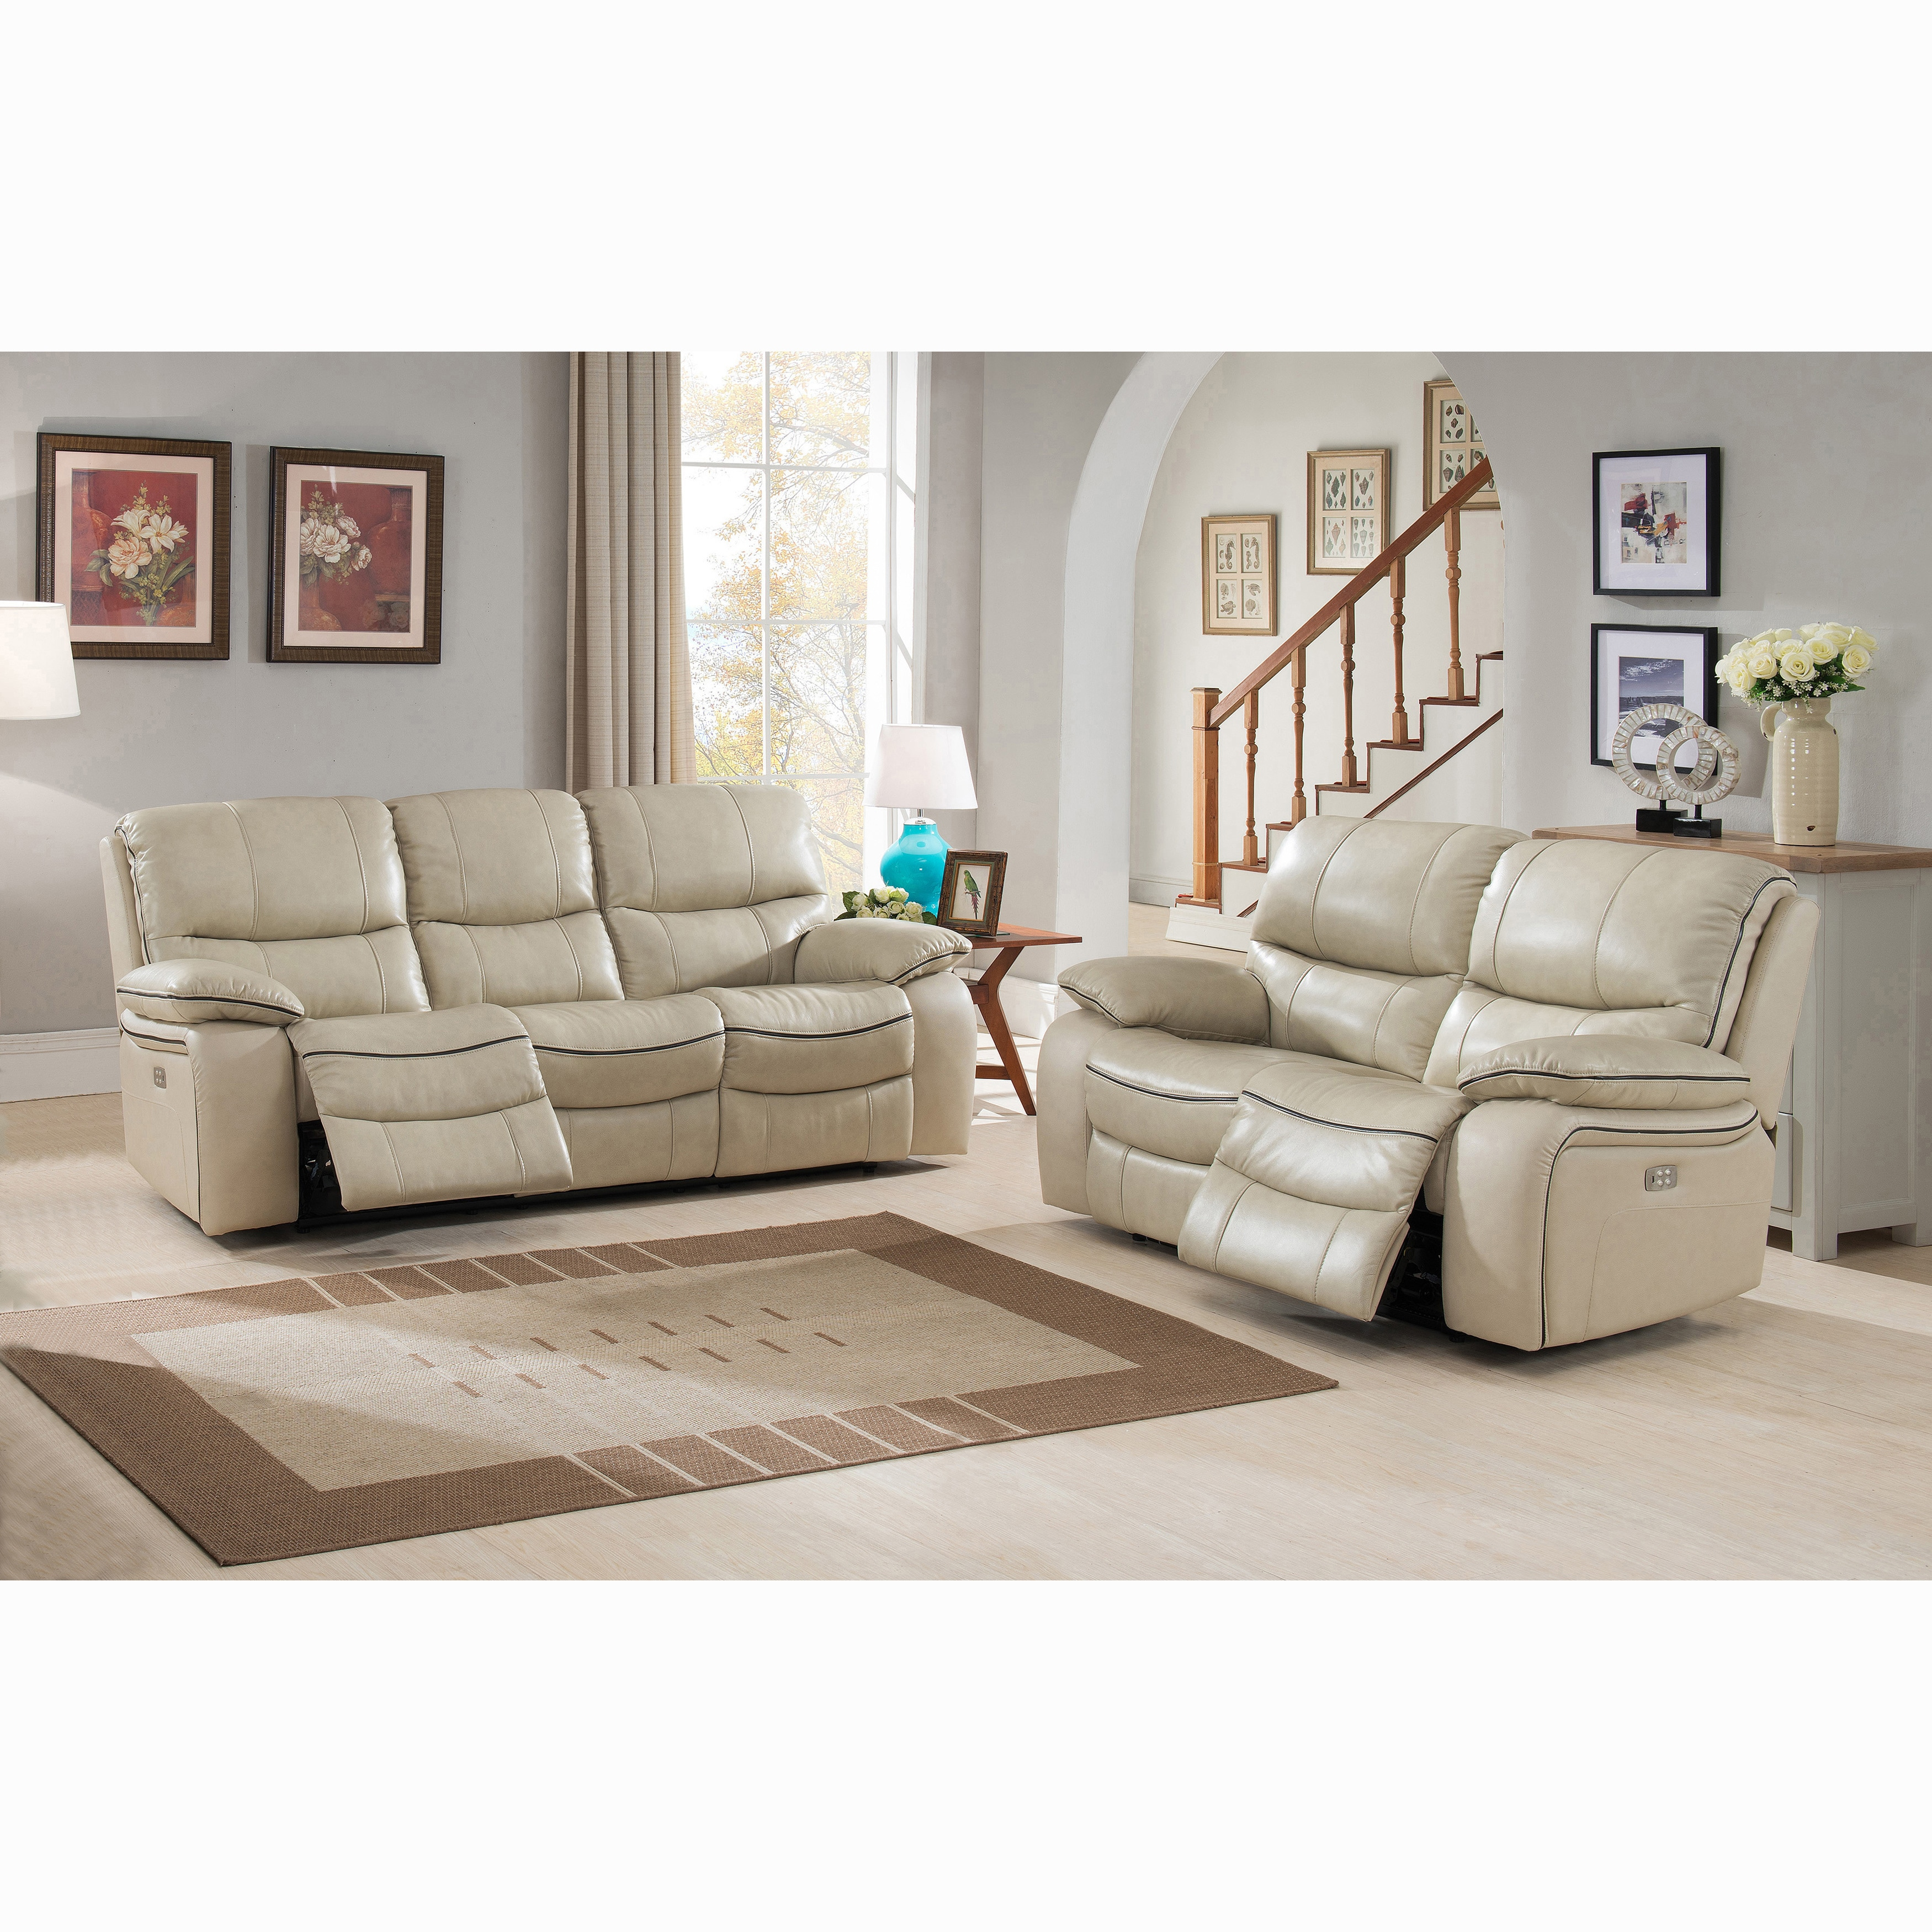 Fabulous Luca Ivory Top Grain Leather Power Reclining Sofa And Loveseat 89 X 38 X 40 Bralicious Painted Fabric Chair Ideas Braliciousco